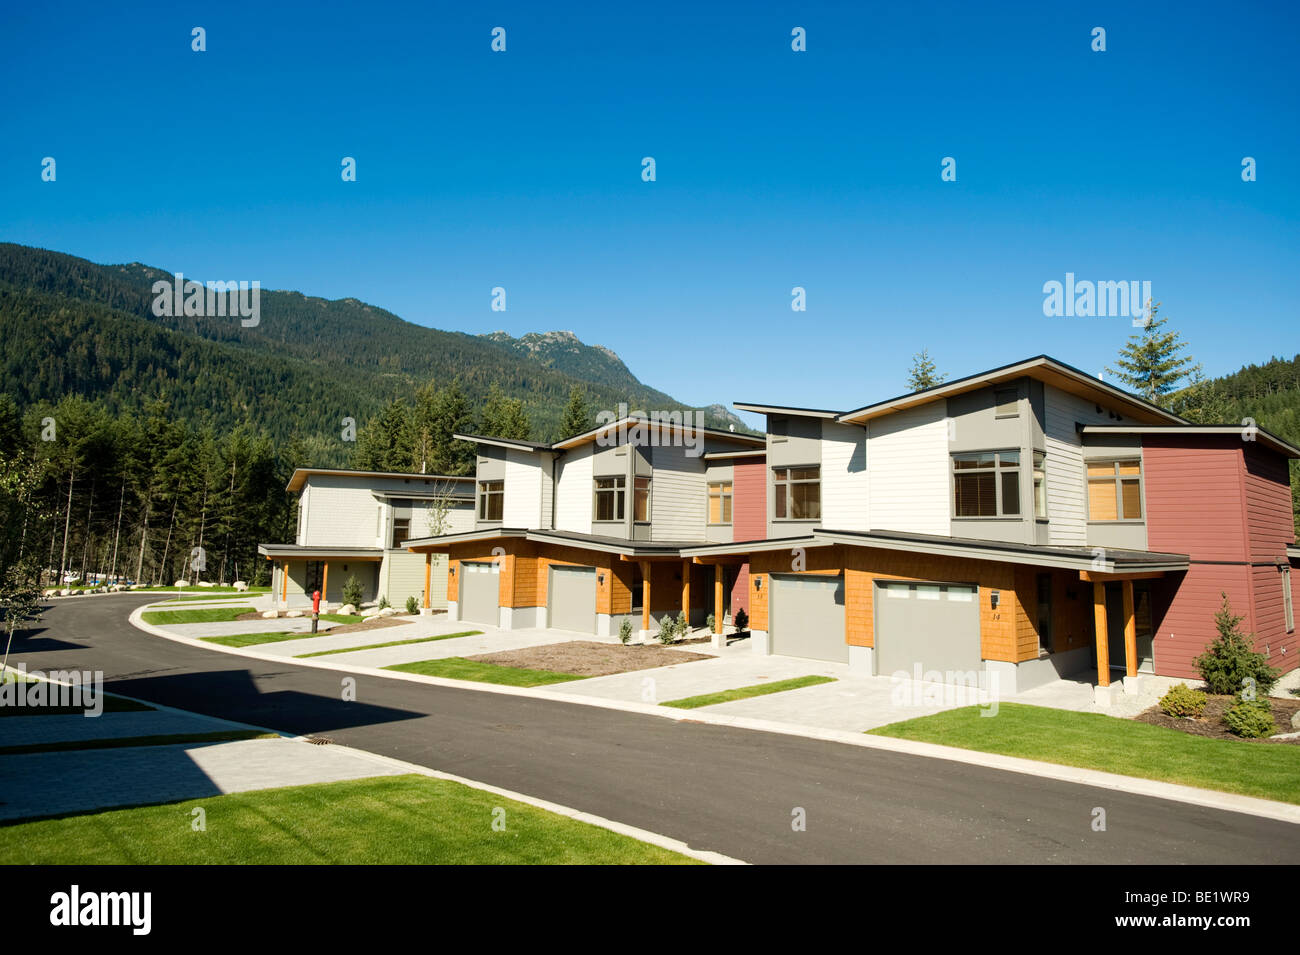 The 2010 Olympic Athlete's Village.  Whistler BC, Canada - Stock Image